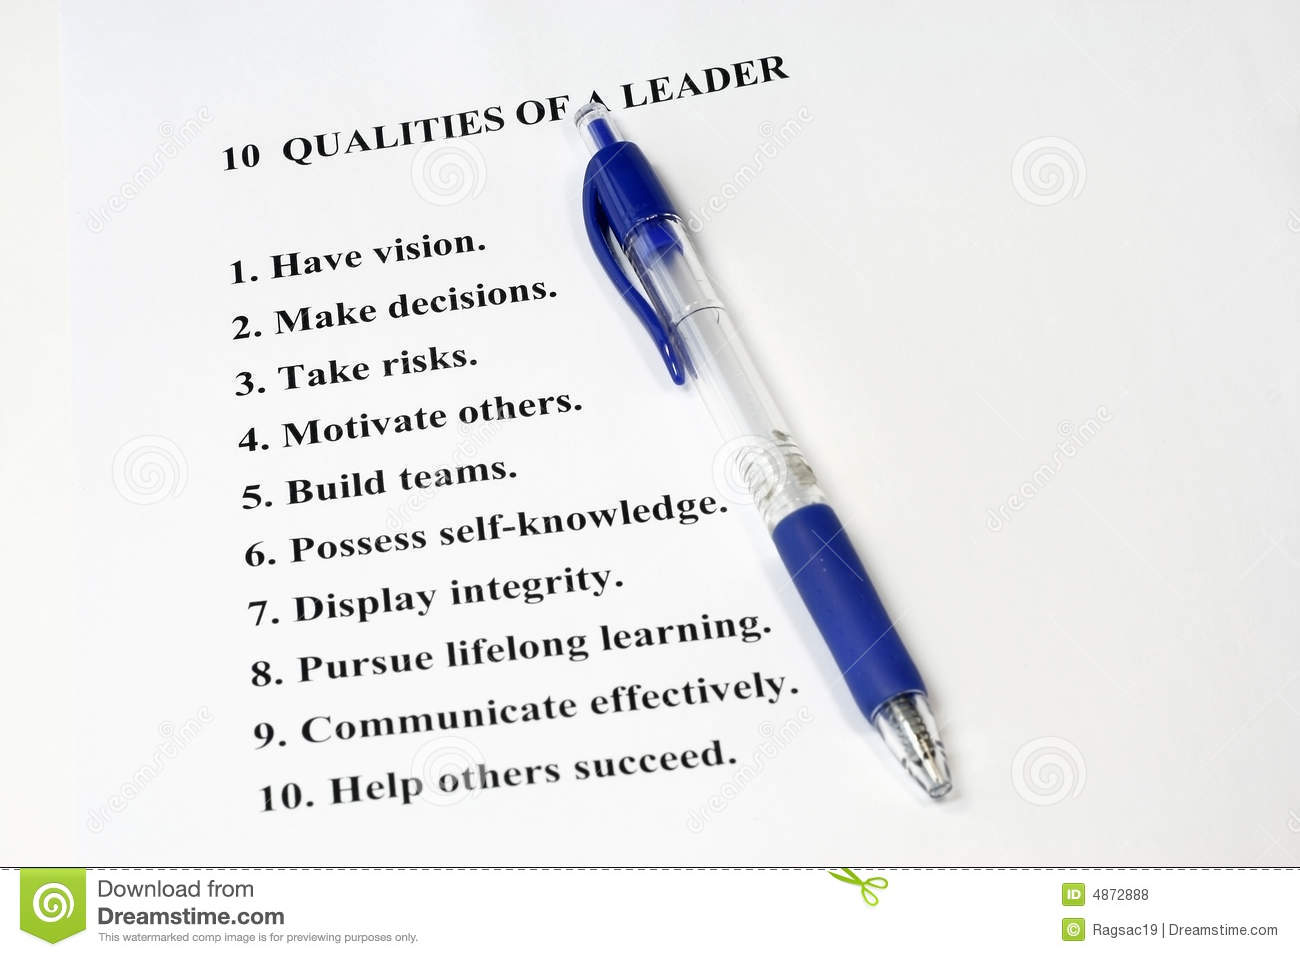 curriculum leader characteristics Cli offers new workshops cli works hard in the field of education every day, hand-in-hand with curriculum leaders, while staying abreast of the most pressing imperatives in the field of.